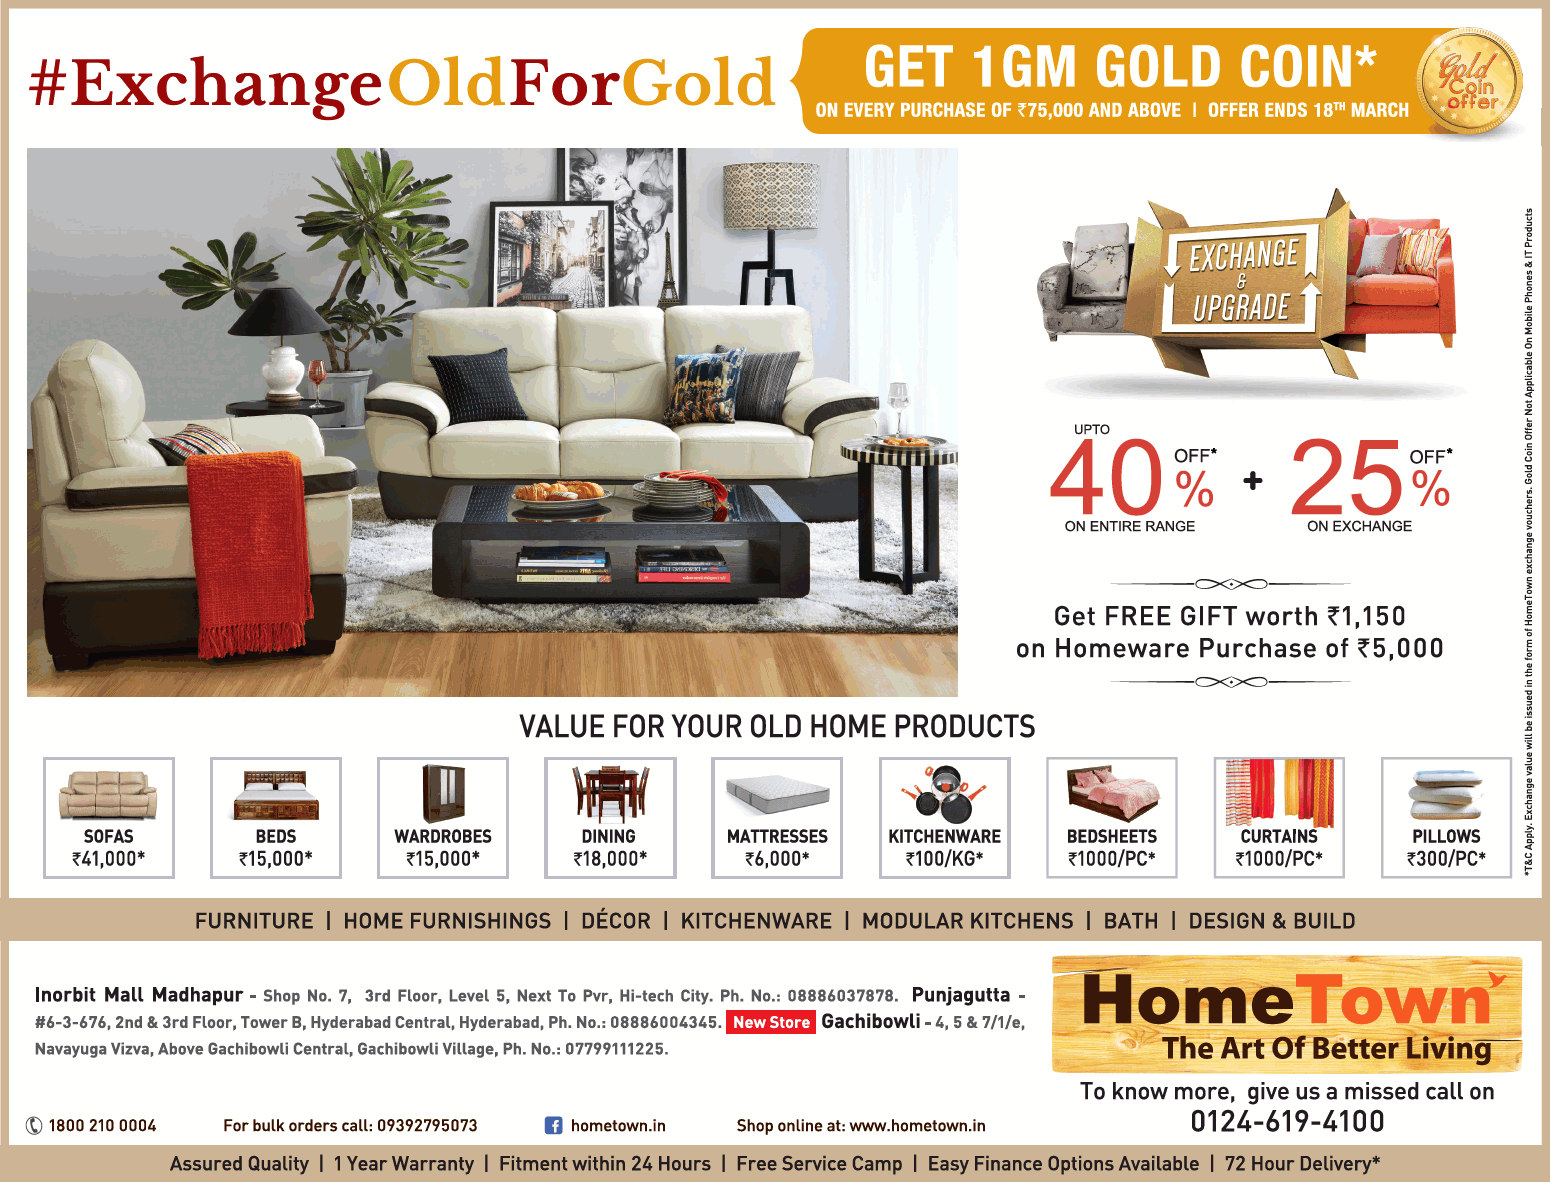 Home Town The Art Of Better Living Exchange Old For Gold Get 1Gm Gold Coin Ad